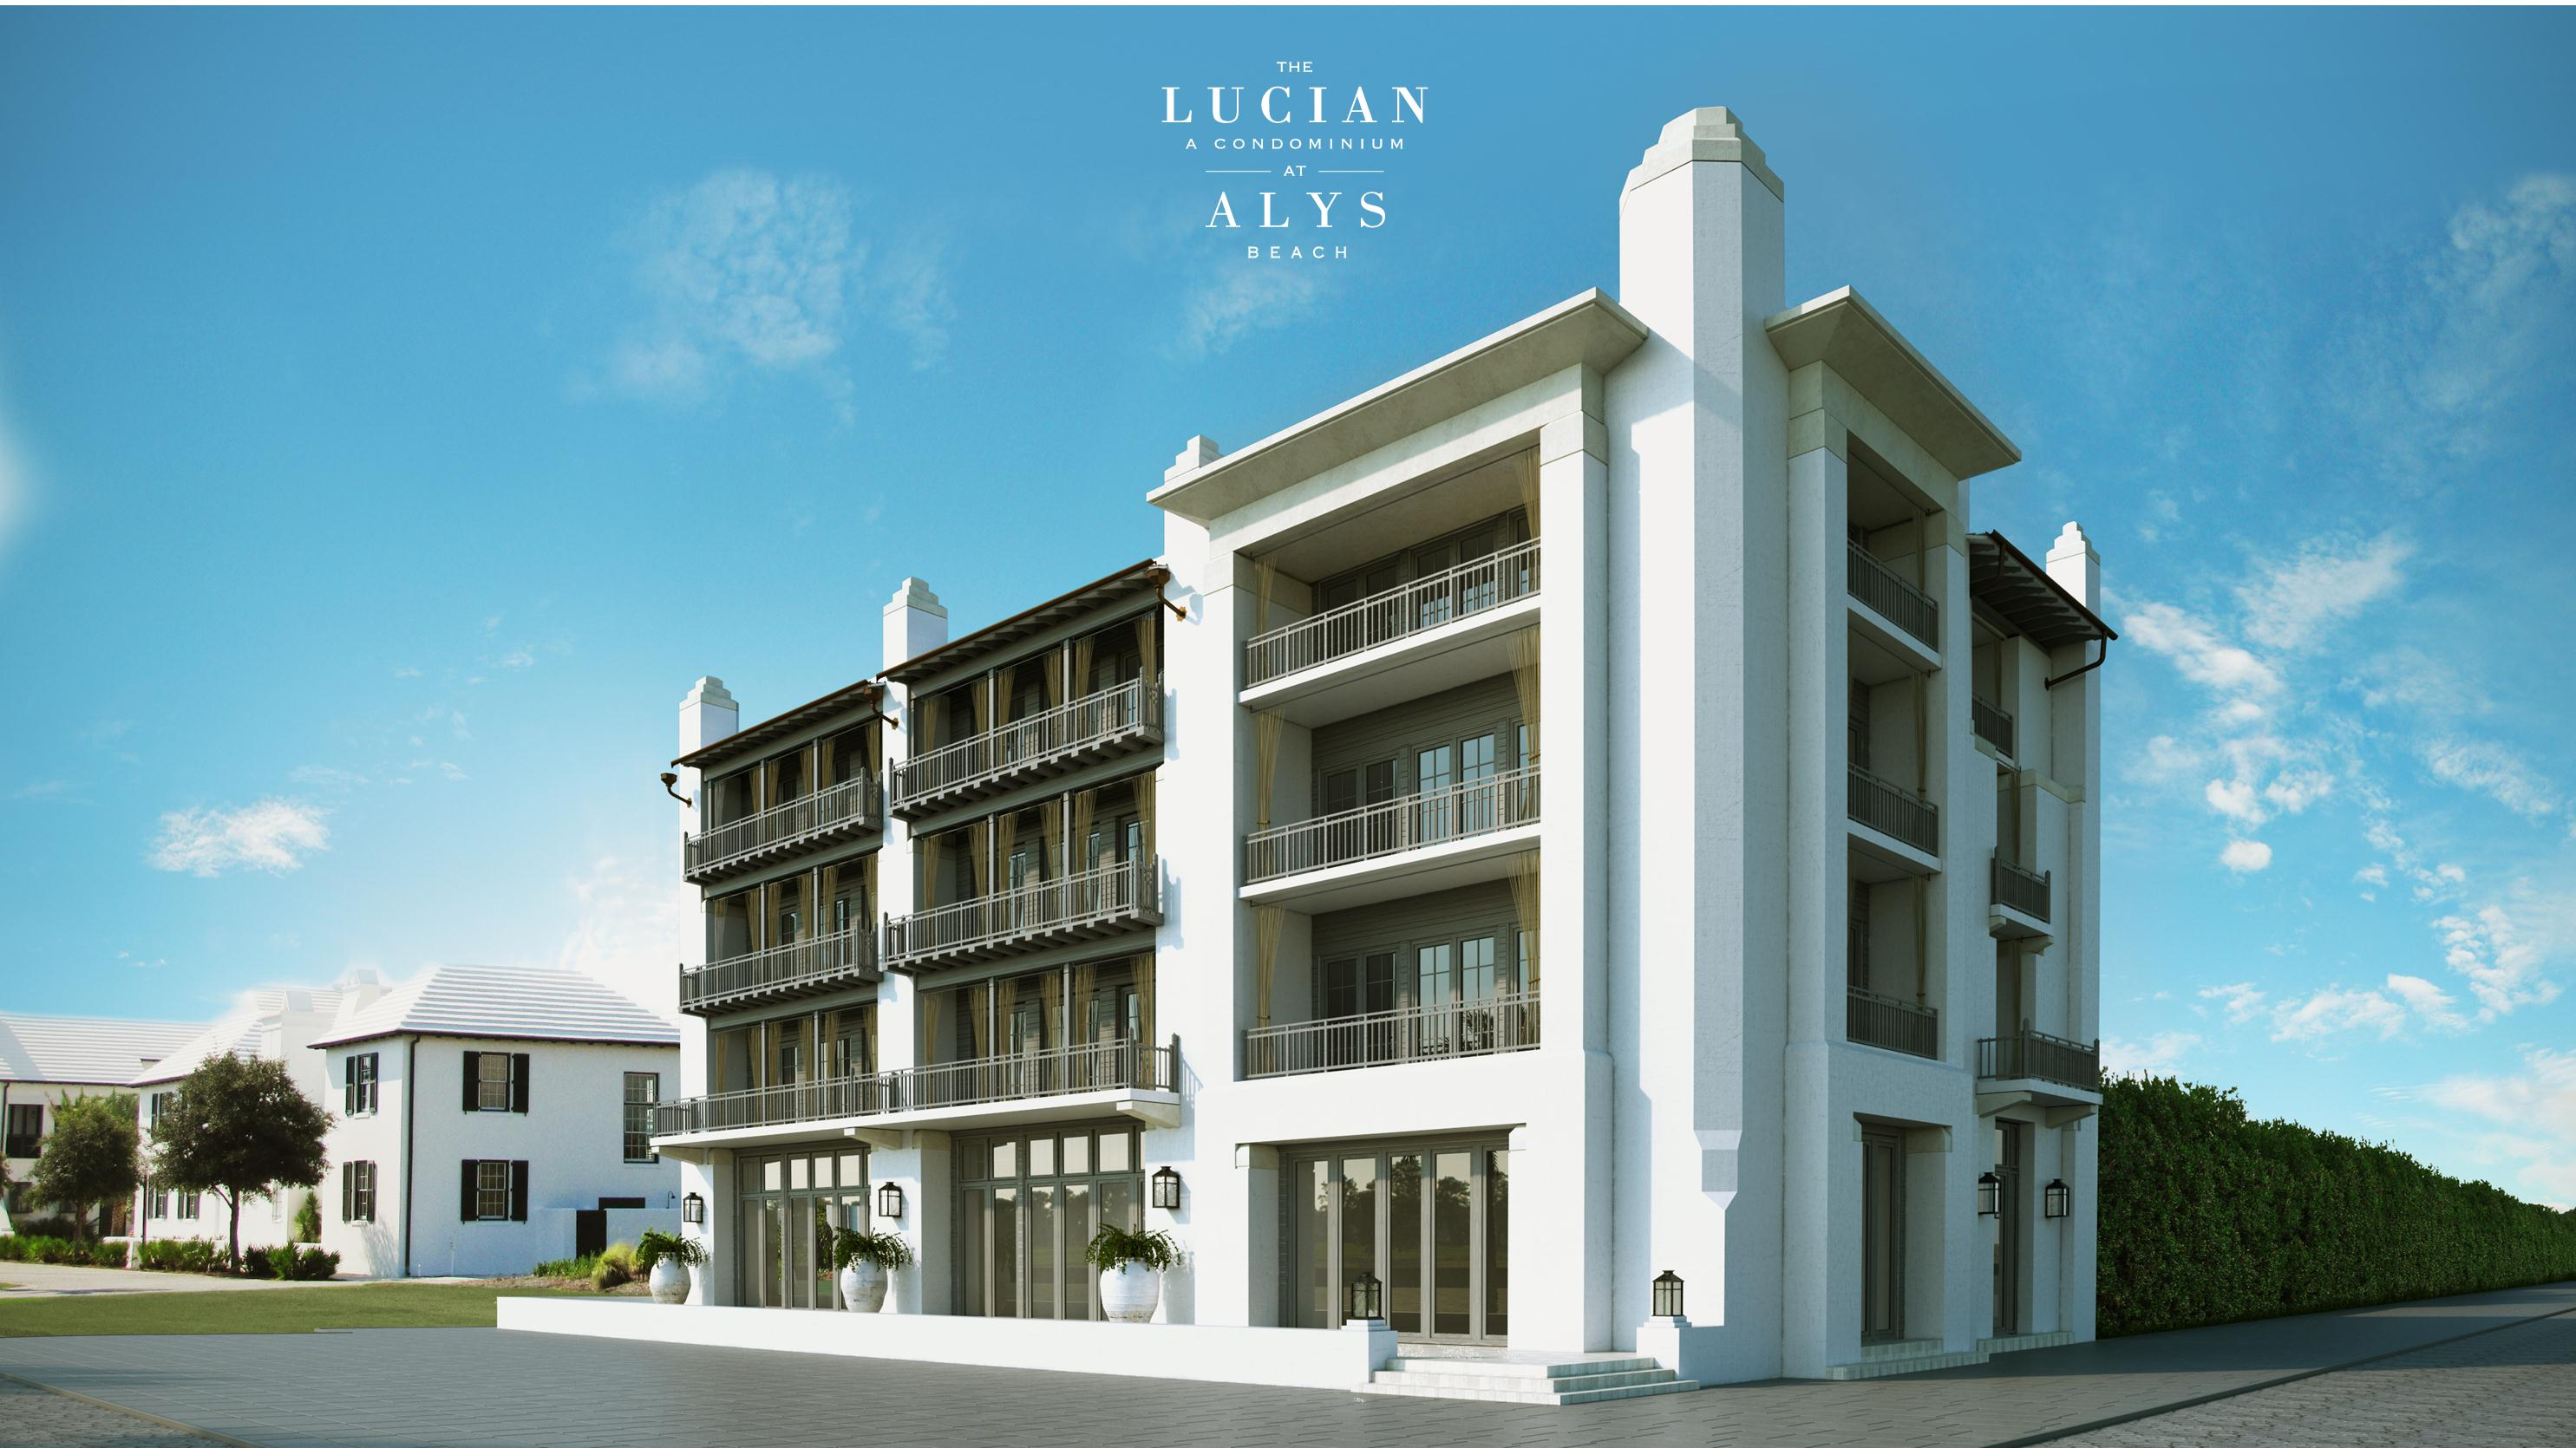 The Lucian New Condo Development At Alys Beach